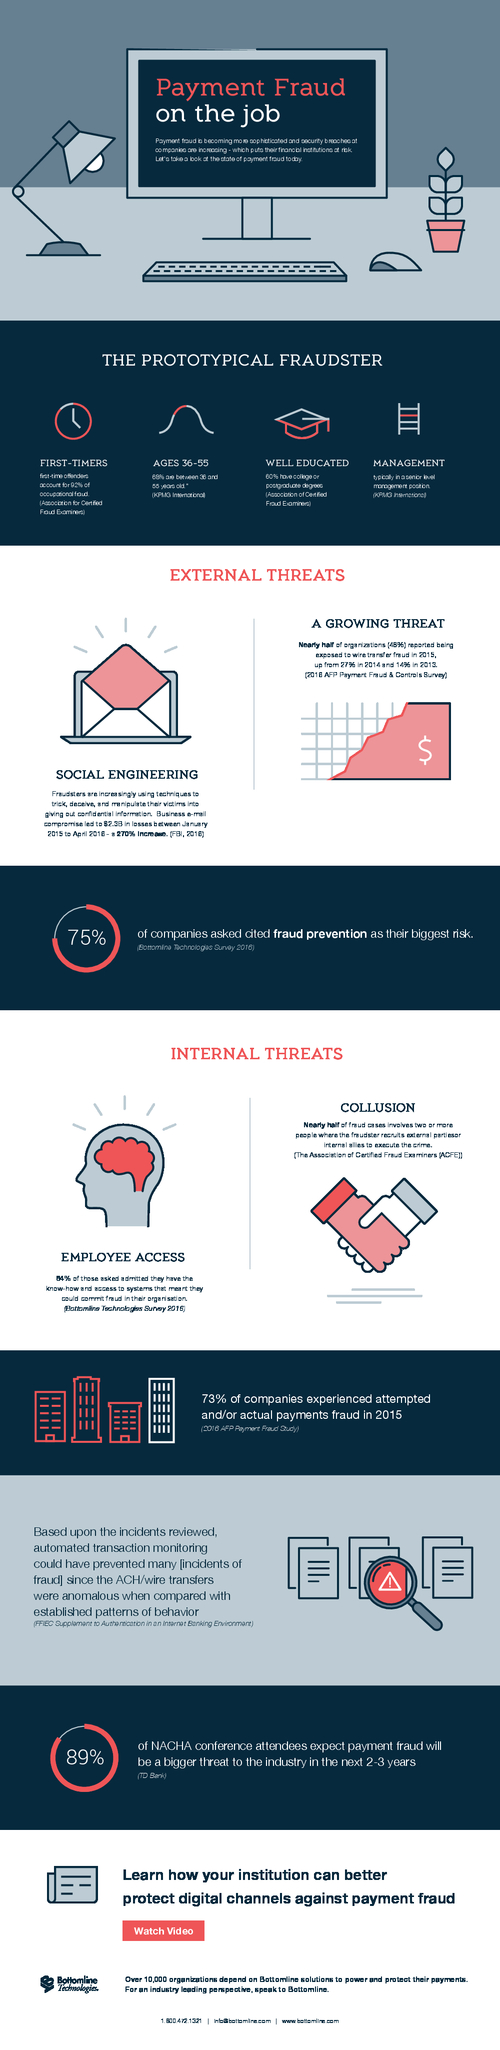 Fraud on the Job; 73% of Businesses Hit with Actual or Attempted Payment Fraud